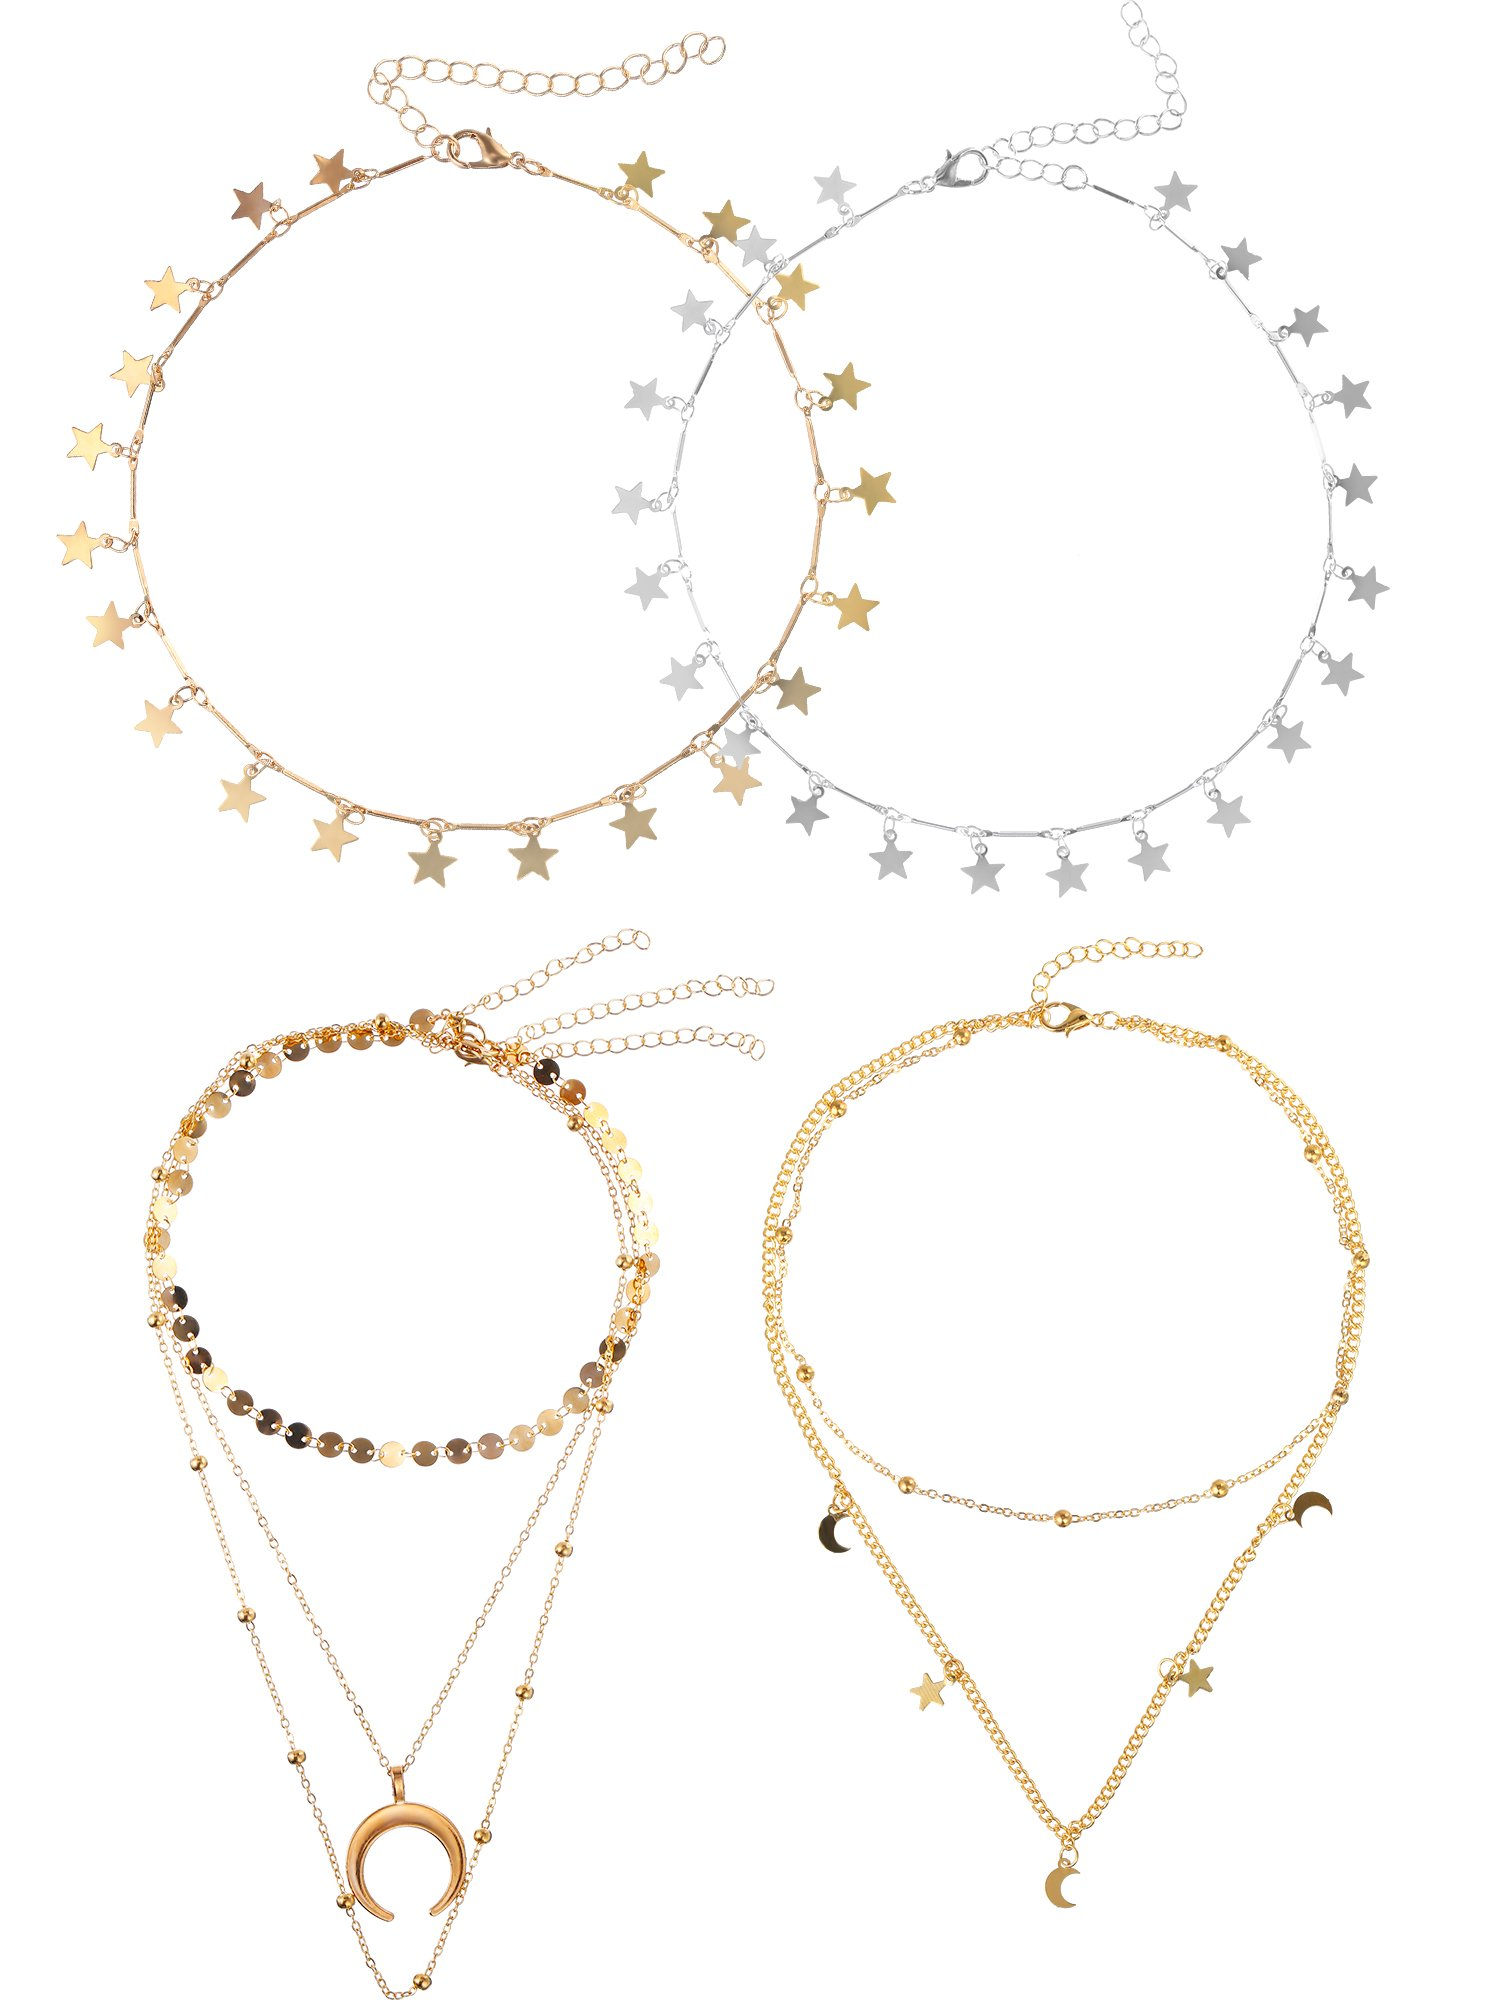 Tatuo 4 Pieces Choker Necklace Moon Lucky Star Shape Charm Necklace Chain Jewelry for Women Girls